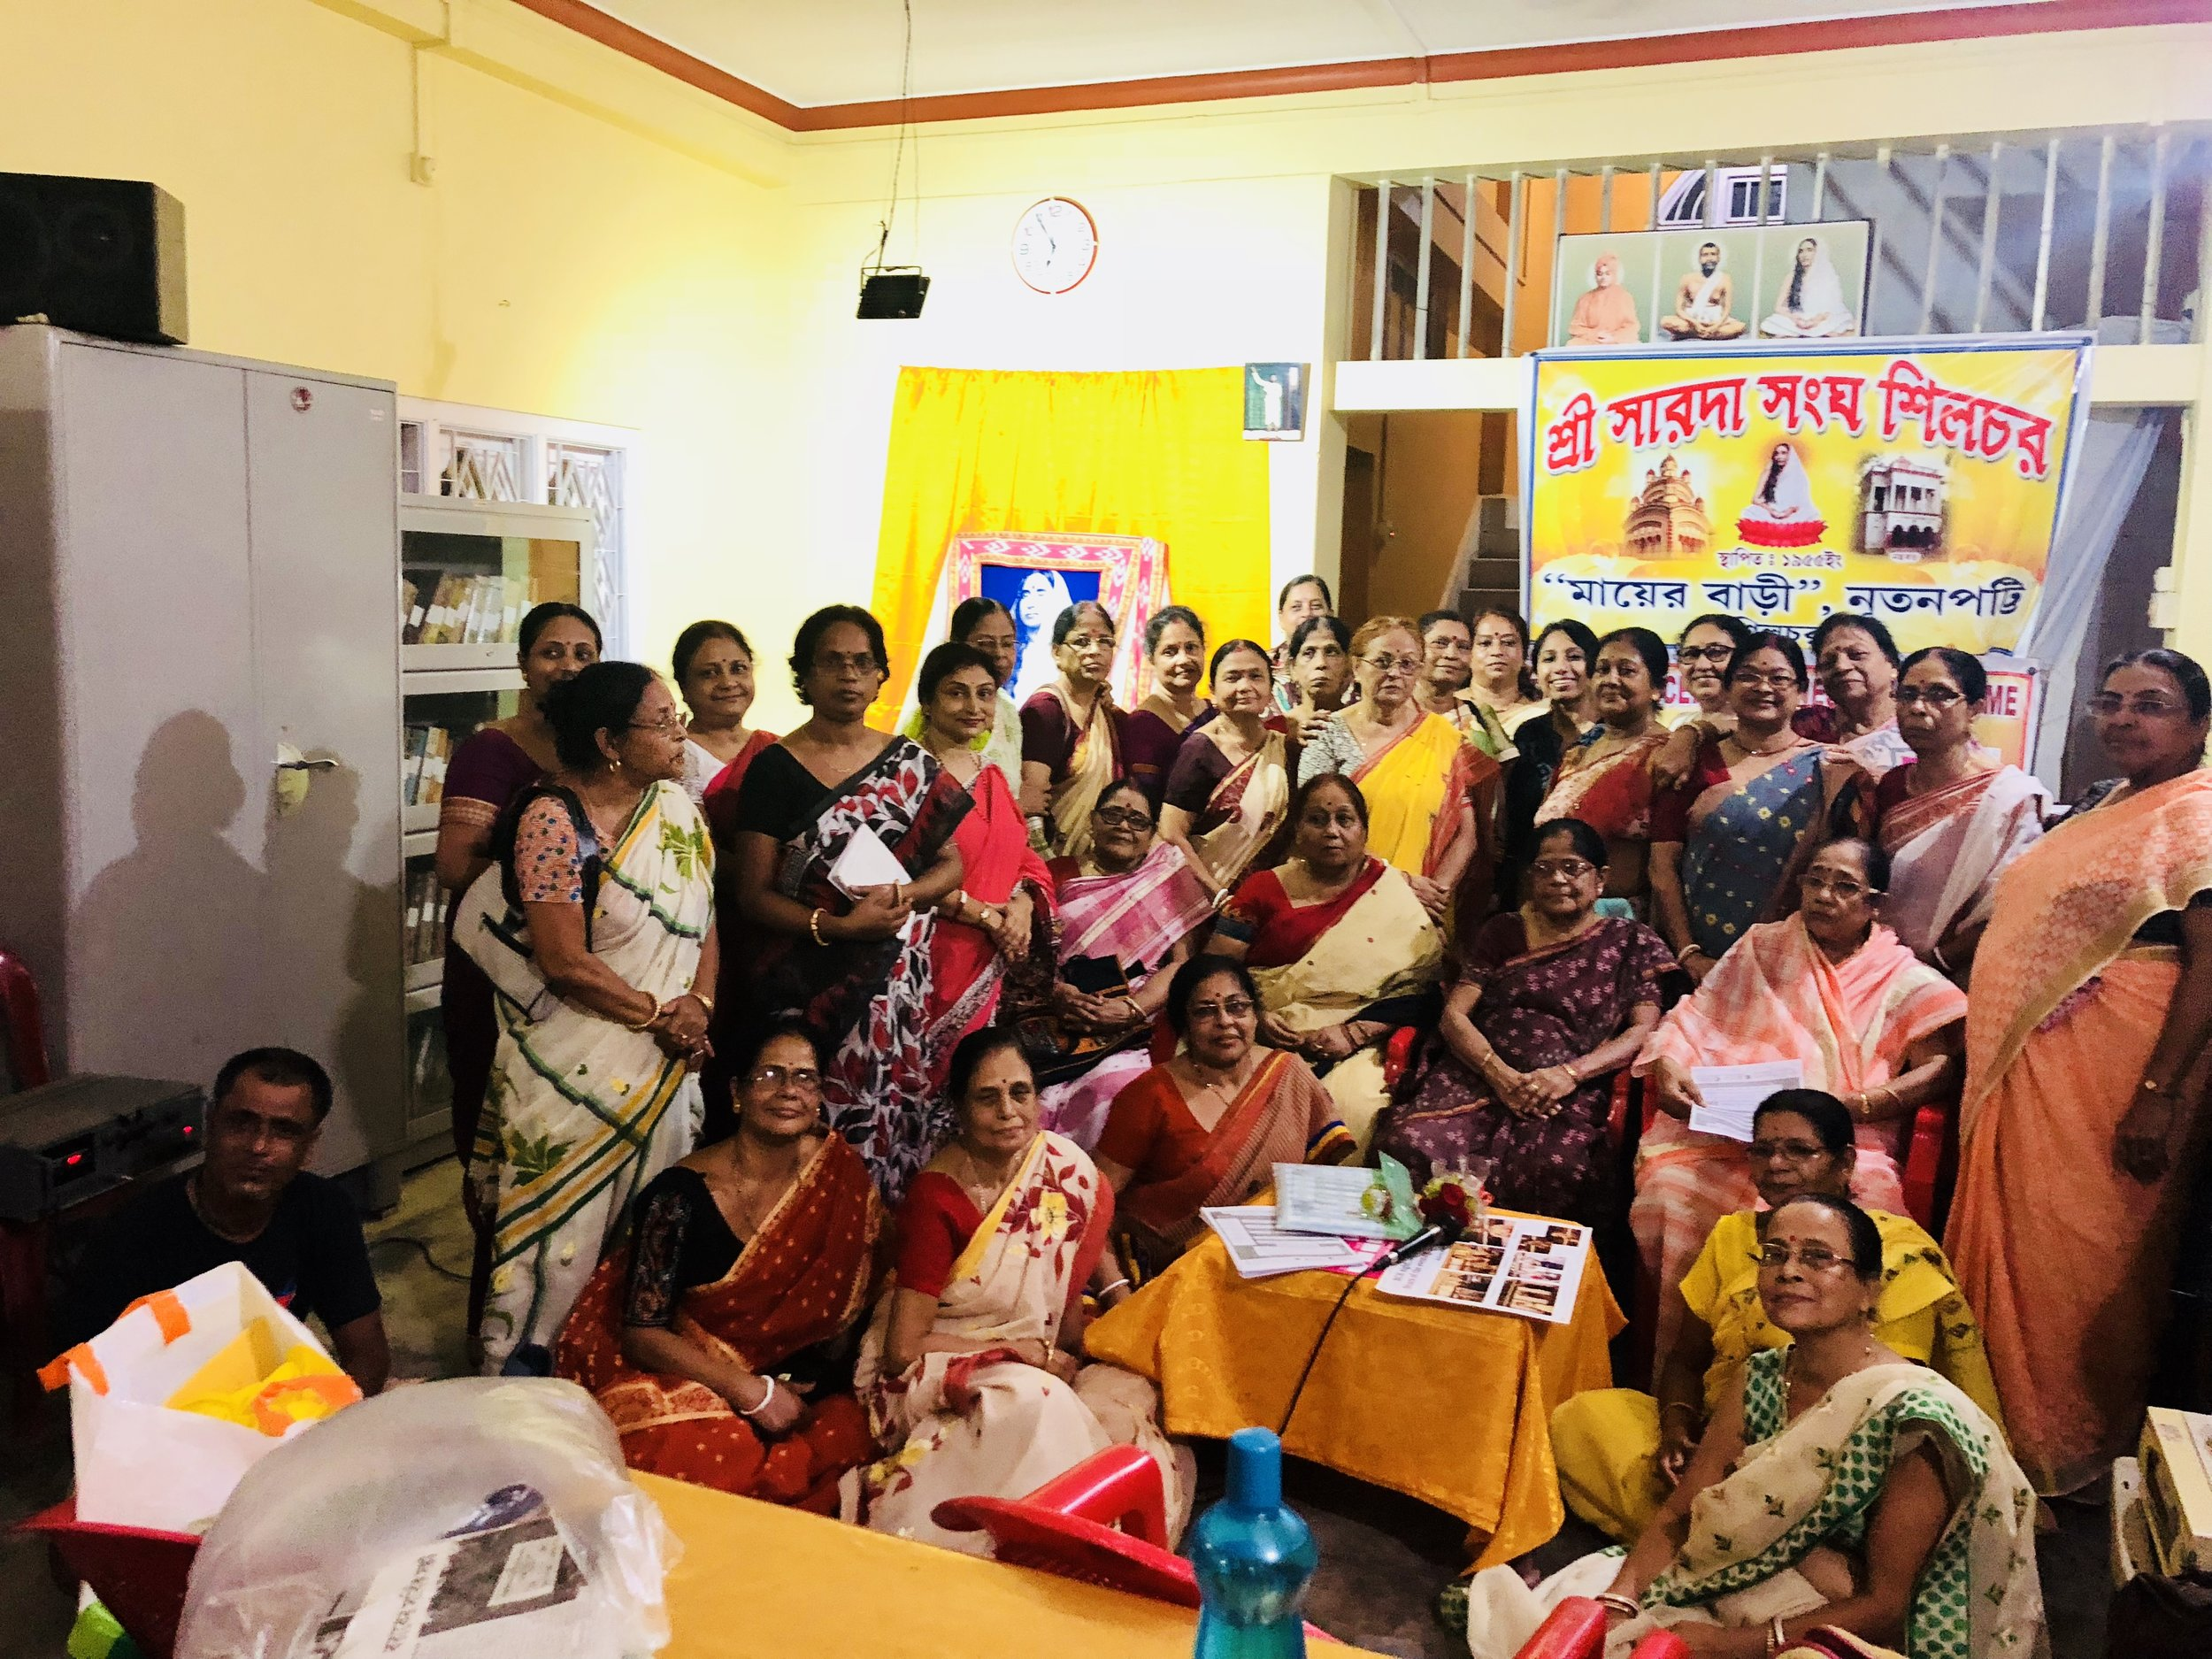 My sincere gratitude to the organizing committee of Sri Sarada Sangha Silchar Branch, for supporting the cause.  We had discussions on diet and lifestyle and also about many factors related to cancer and other diseases in general. Mostly, in all the sessions, I am trying to emphasize on avoiding intake of certain products, people in NE India usually consume and that acts as carcinogen.  Extremely thankful to everyone for your interests and all the respected women present in the audience giving me the assurance that from now onwards, they will take care of their breast health and perform breast self exam religiously and also other screening processes when needed.